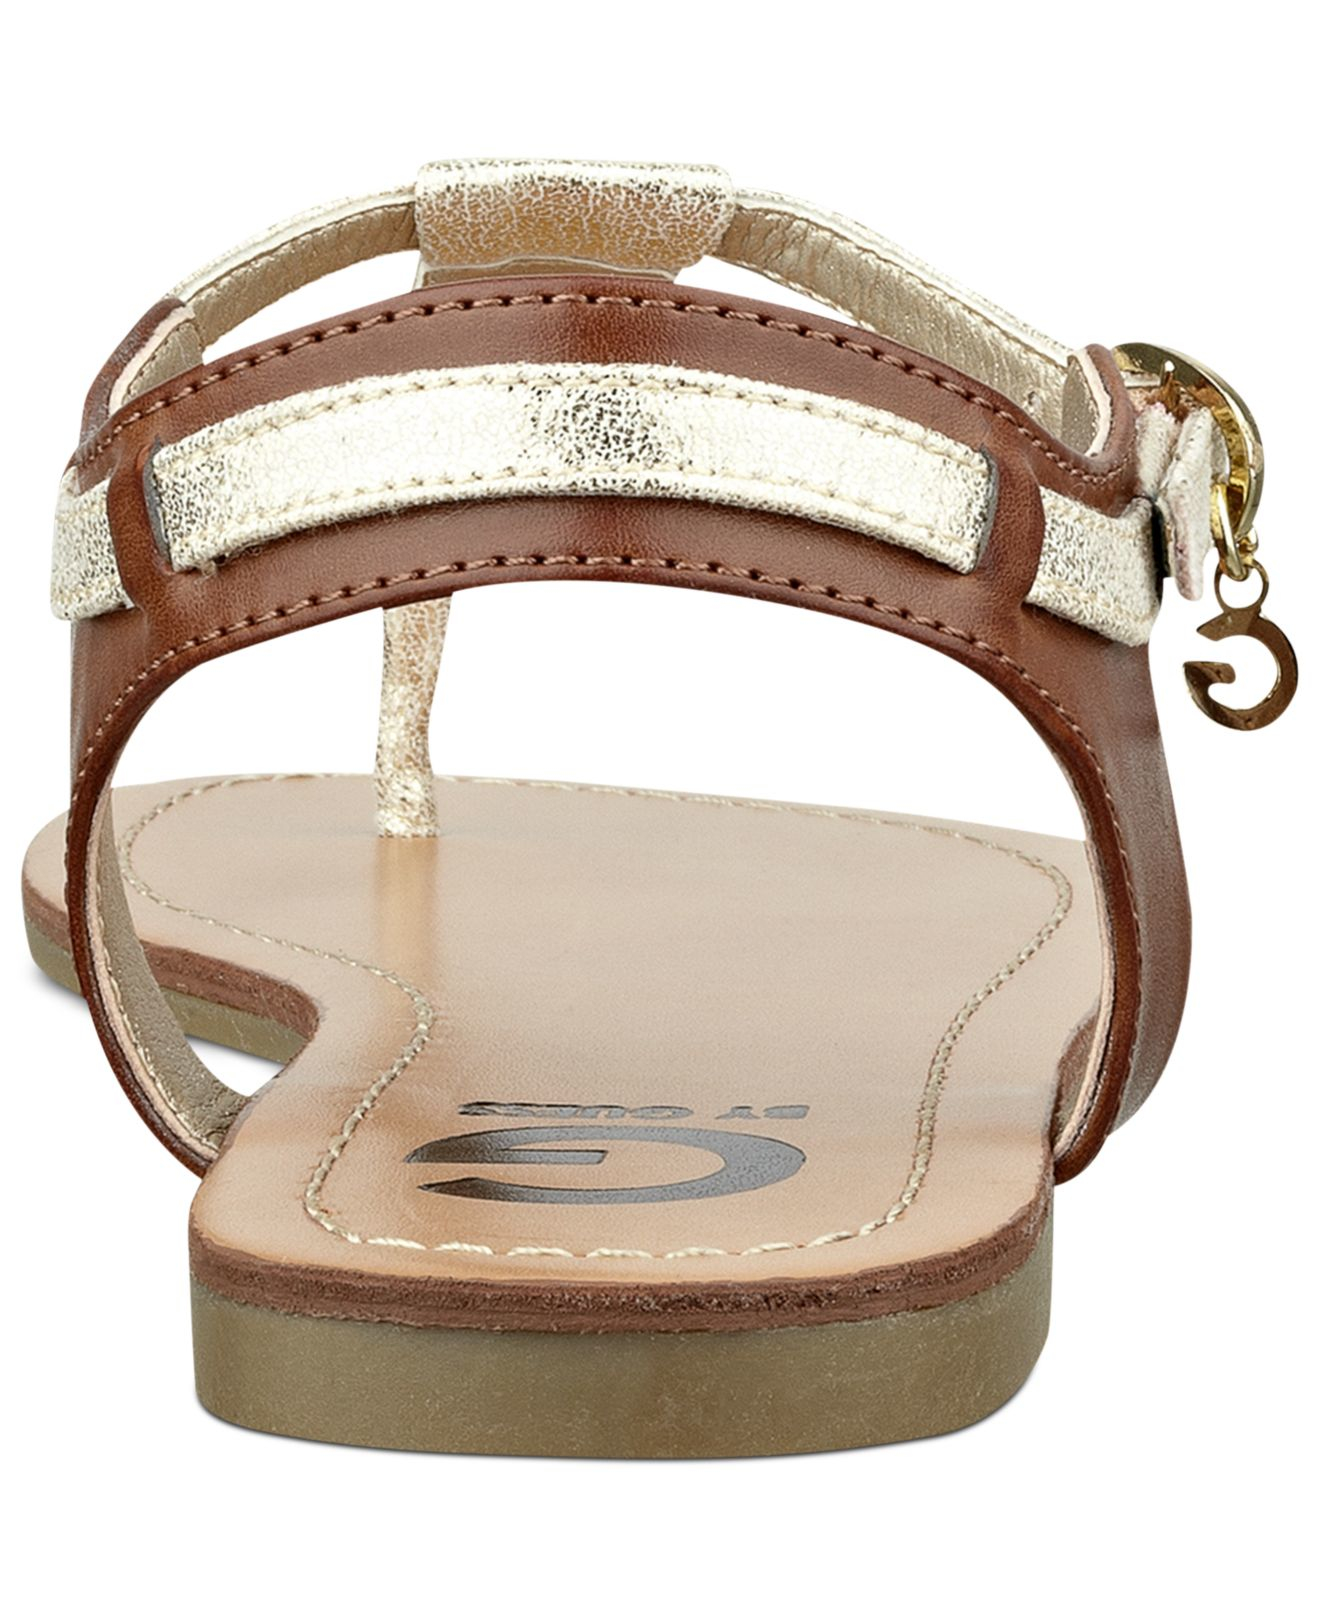 cb24a1a6f Lyst - G by Guess Women S Luzter T-Strap Flat Thong Sandals in Metallic